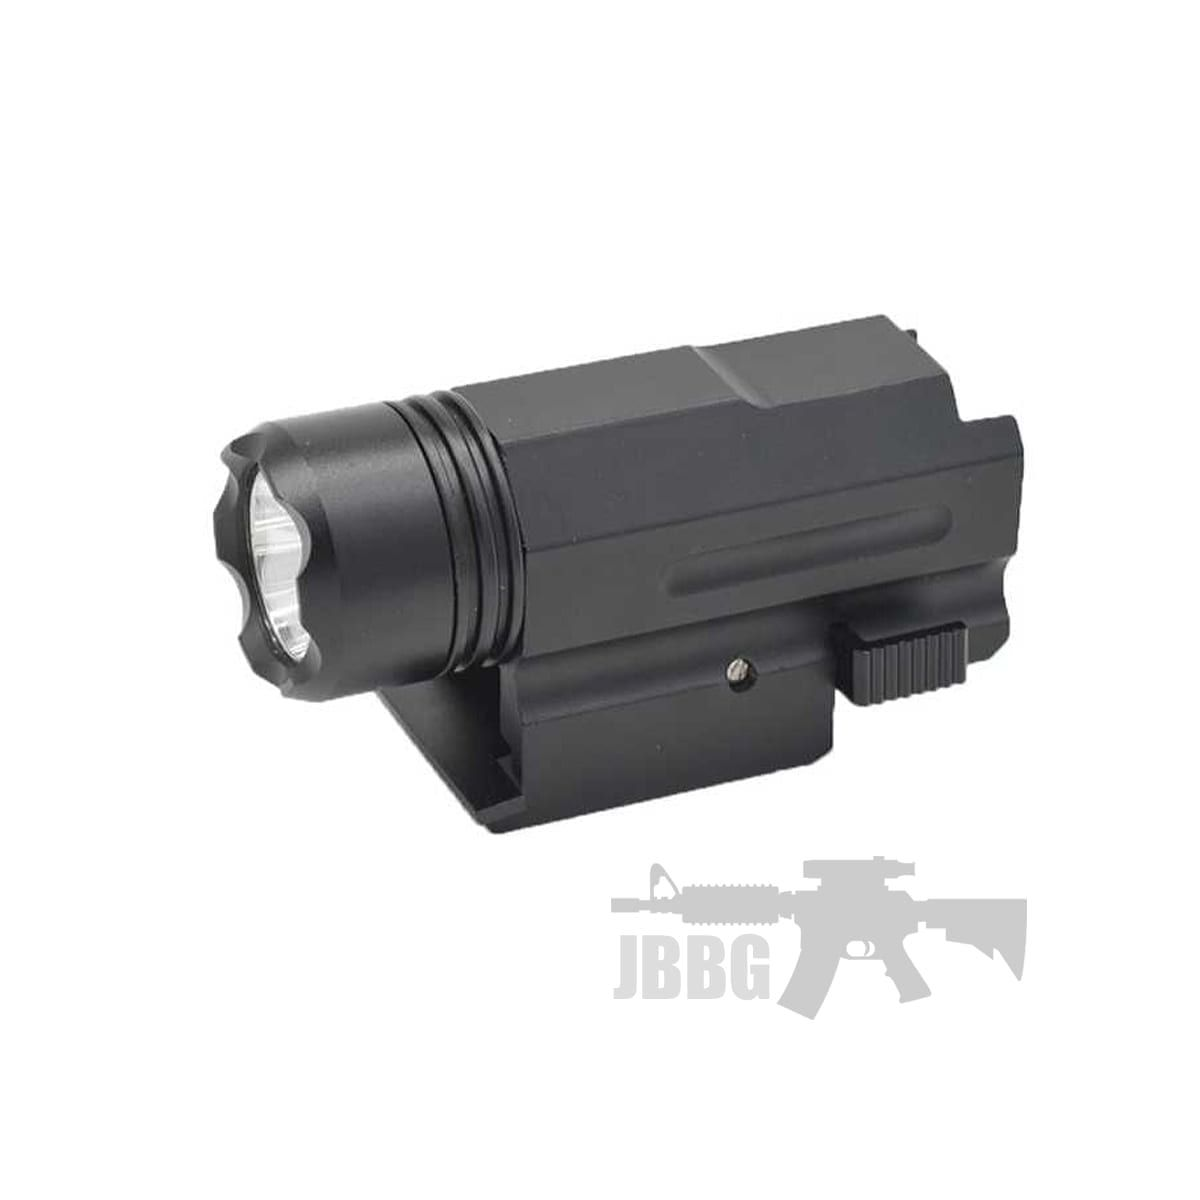 torch for airsoft pistol